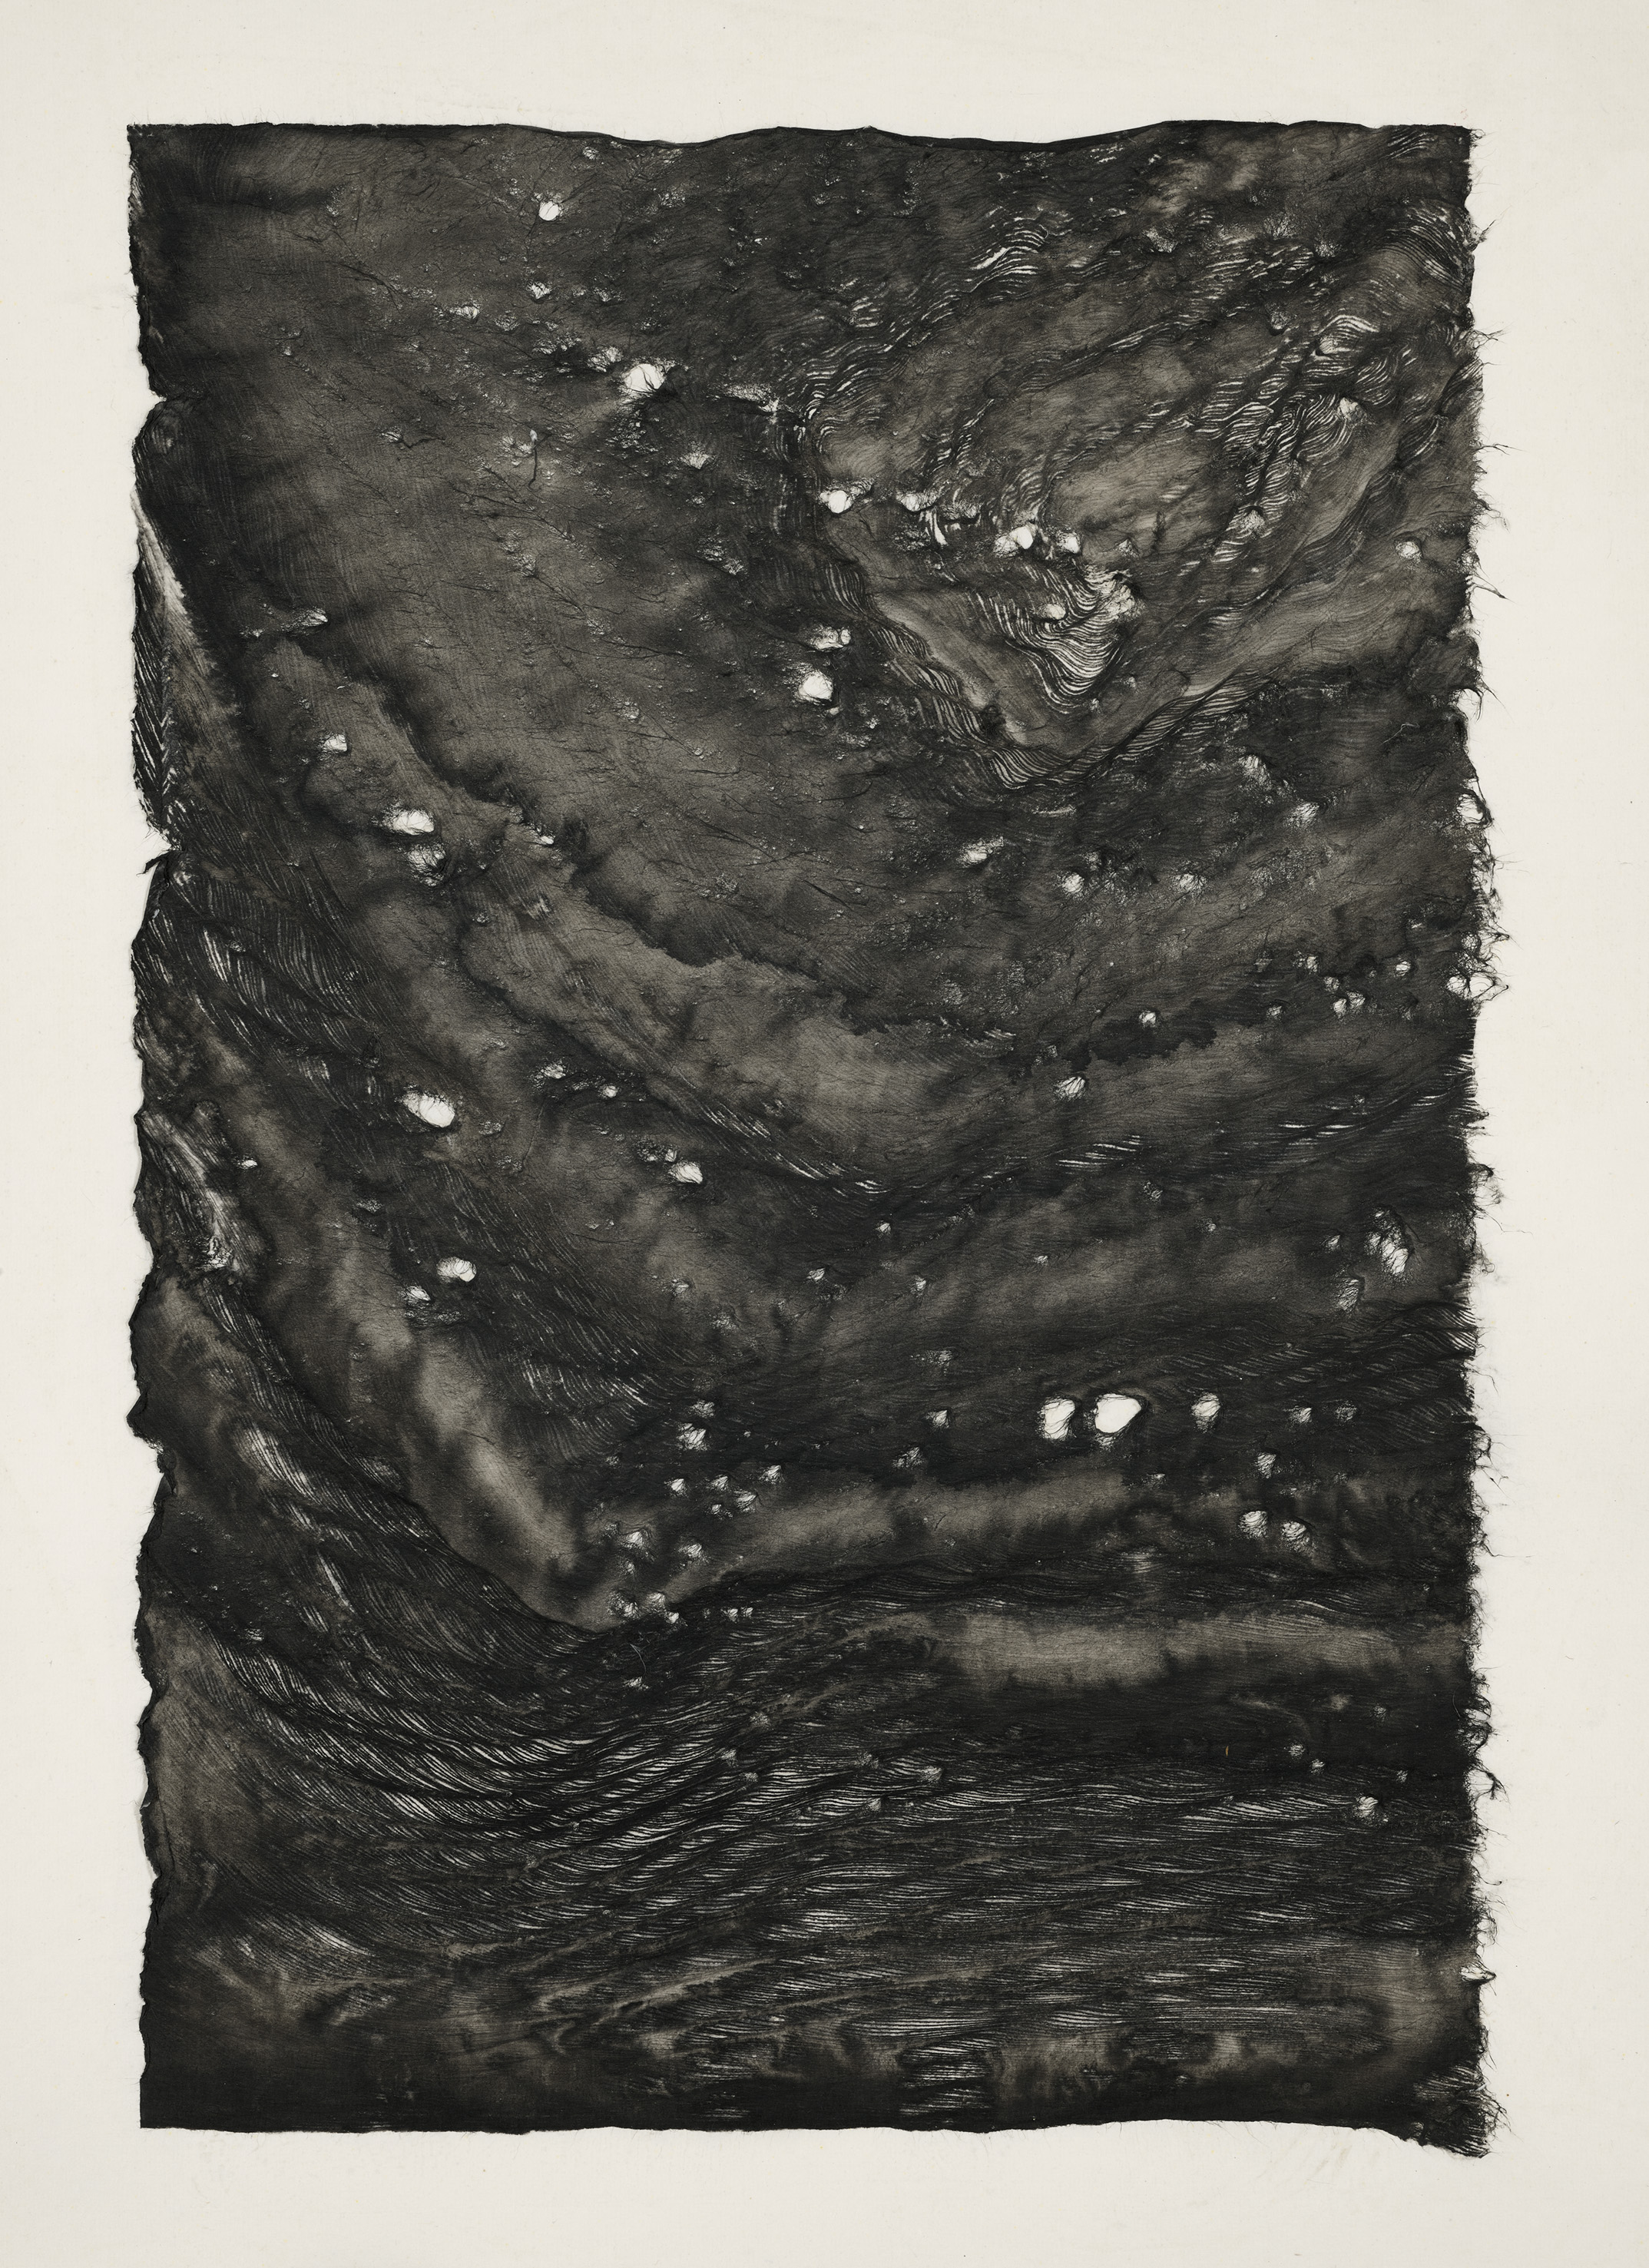 127a-a-rhythm-of-landscape-13-ink-on-paper-50-5cm-height-x-34cm-width-2020